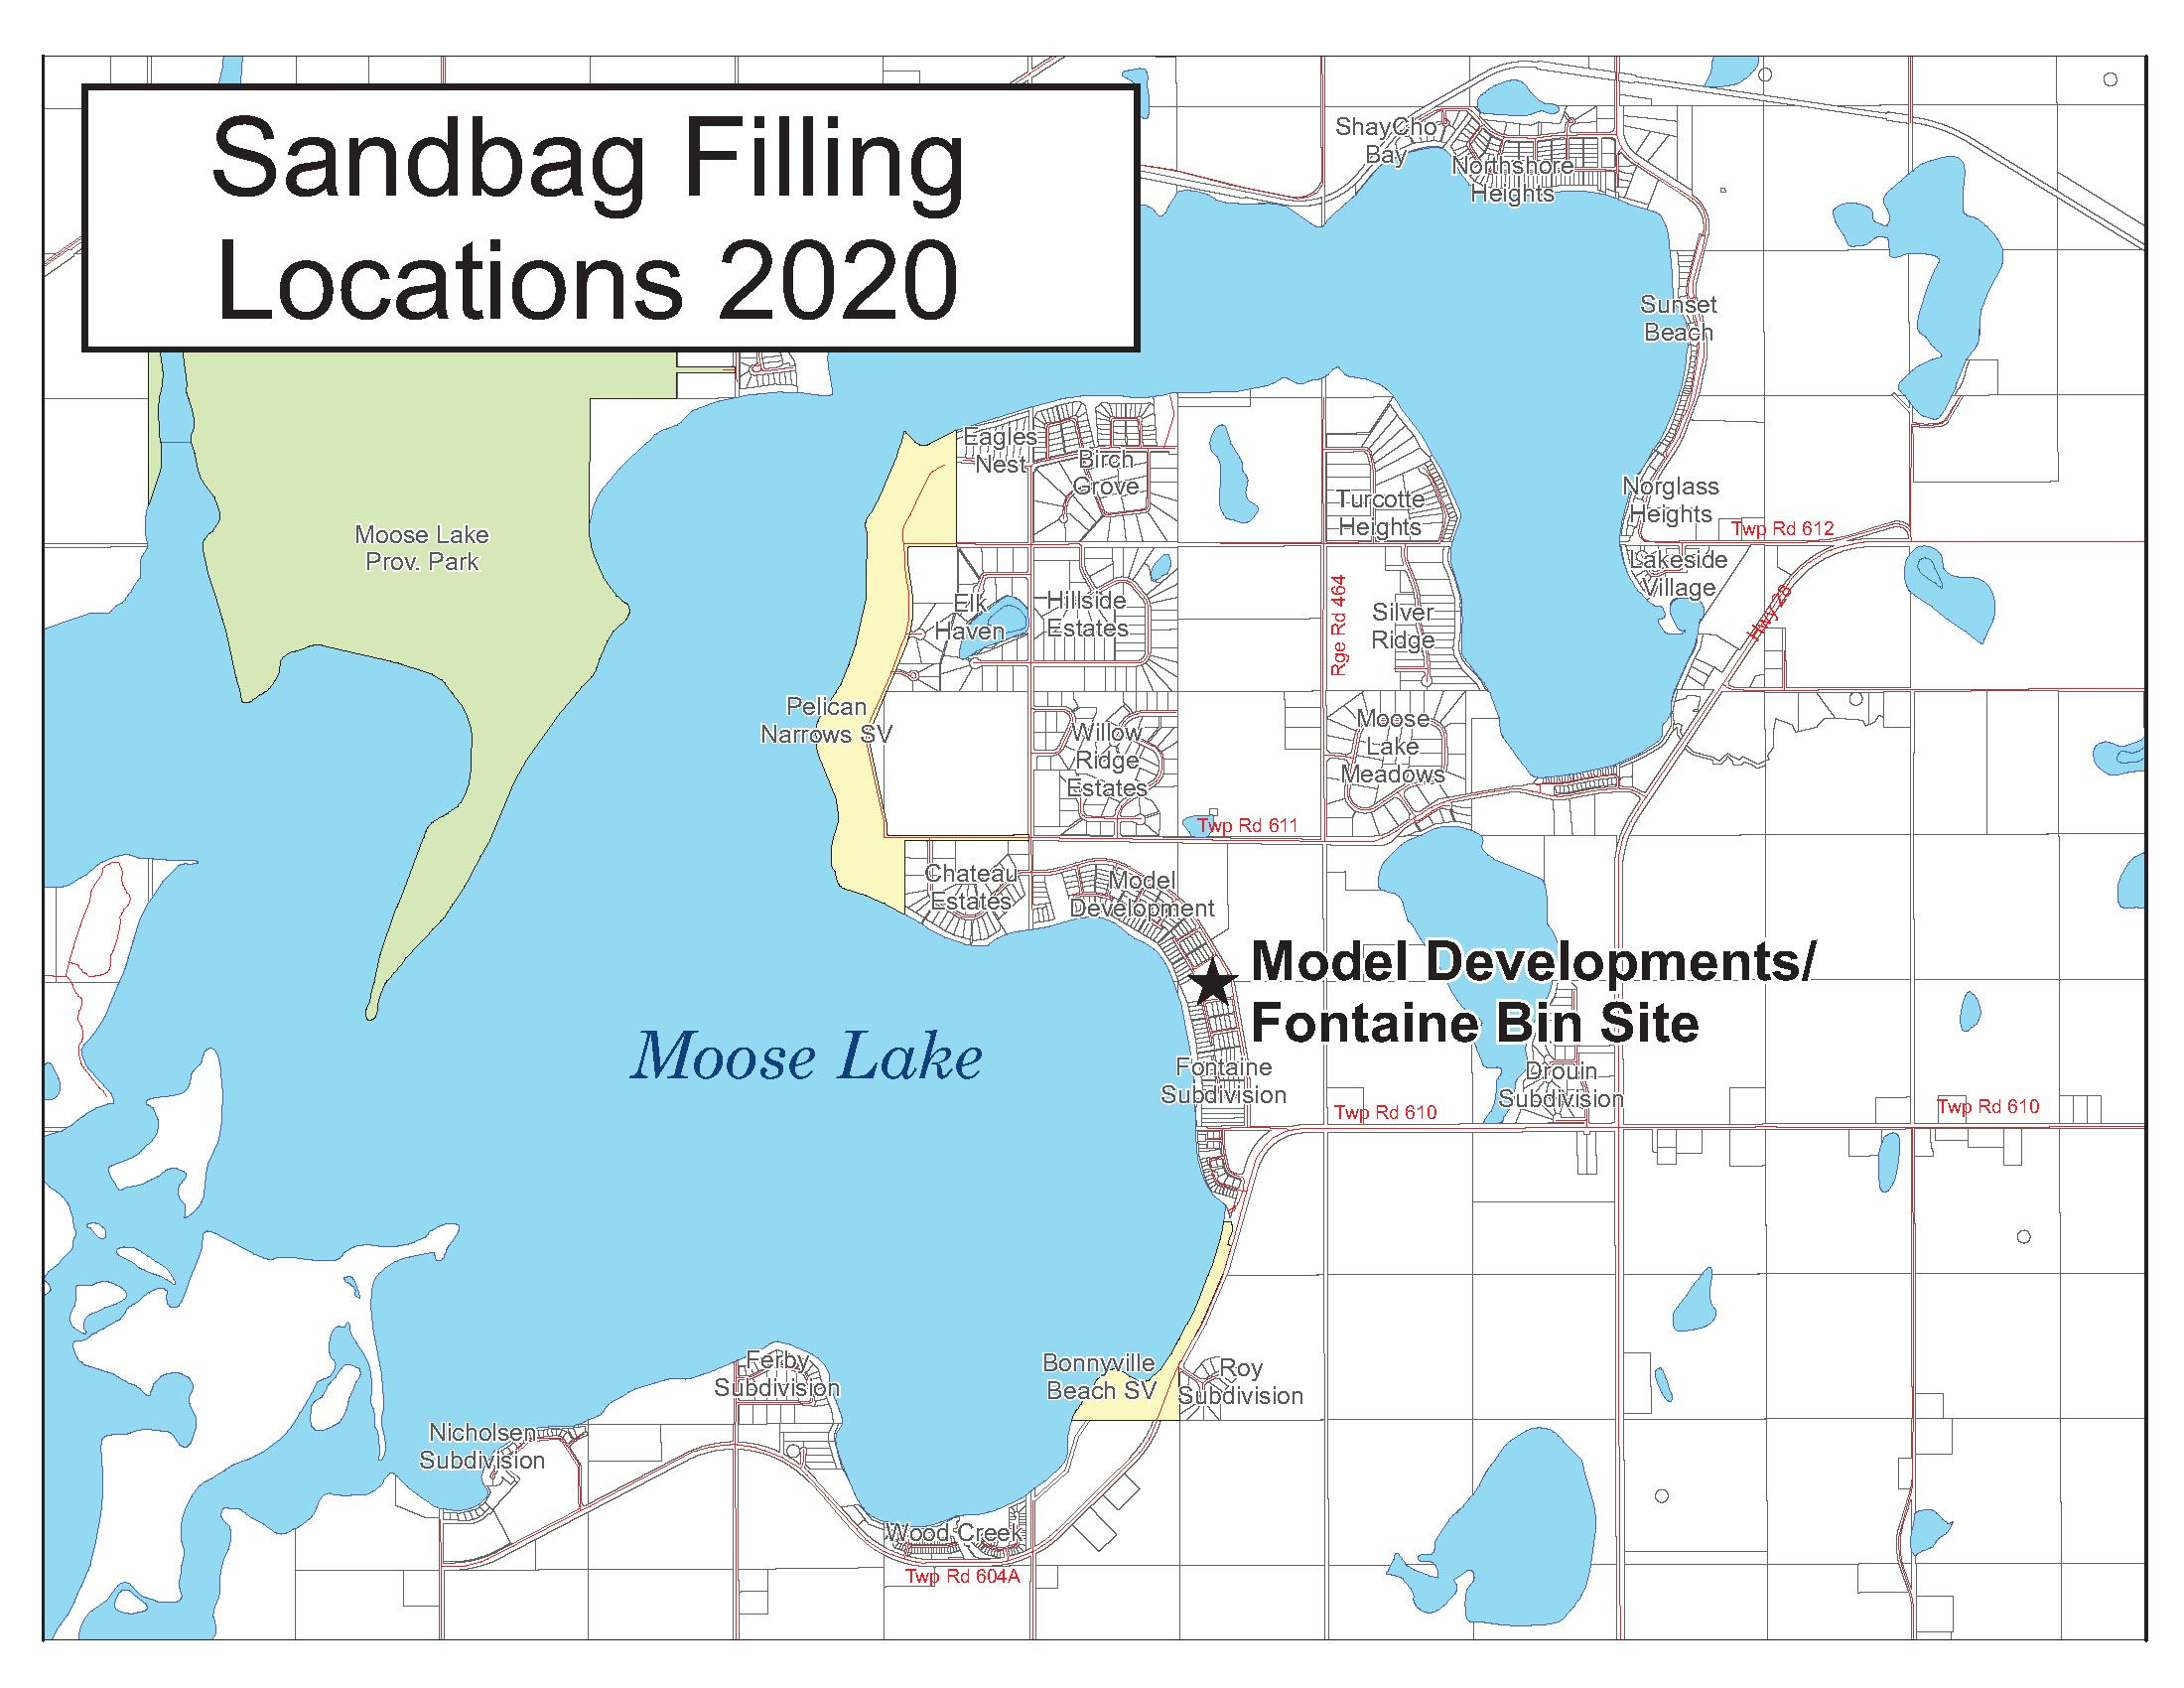 Sandbags Map 2020 - Moose Lake